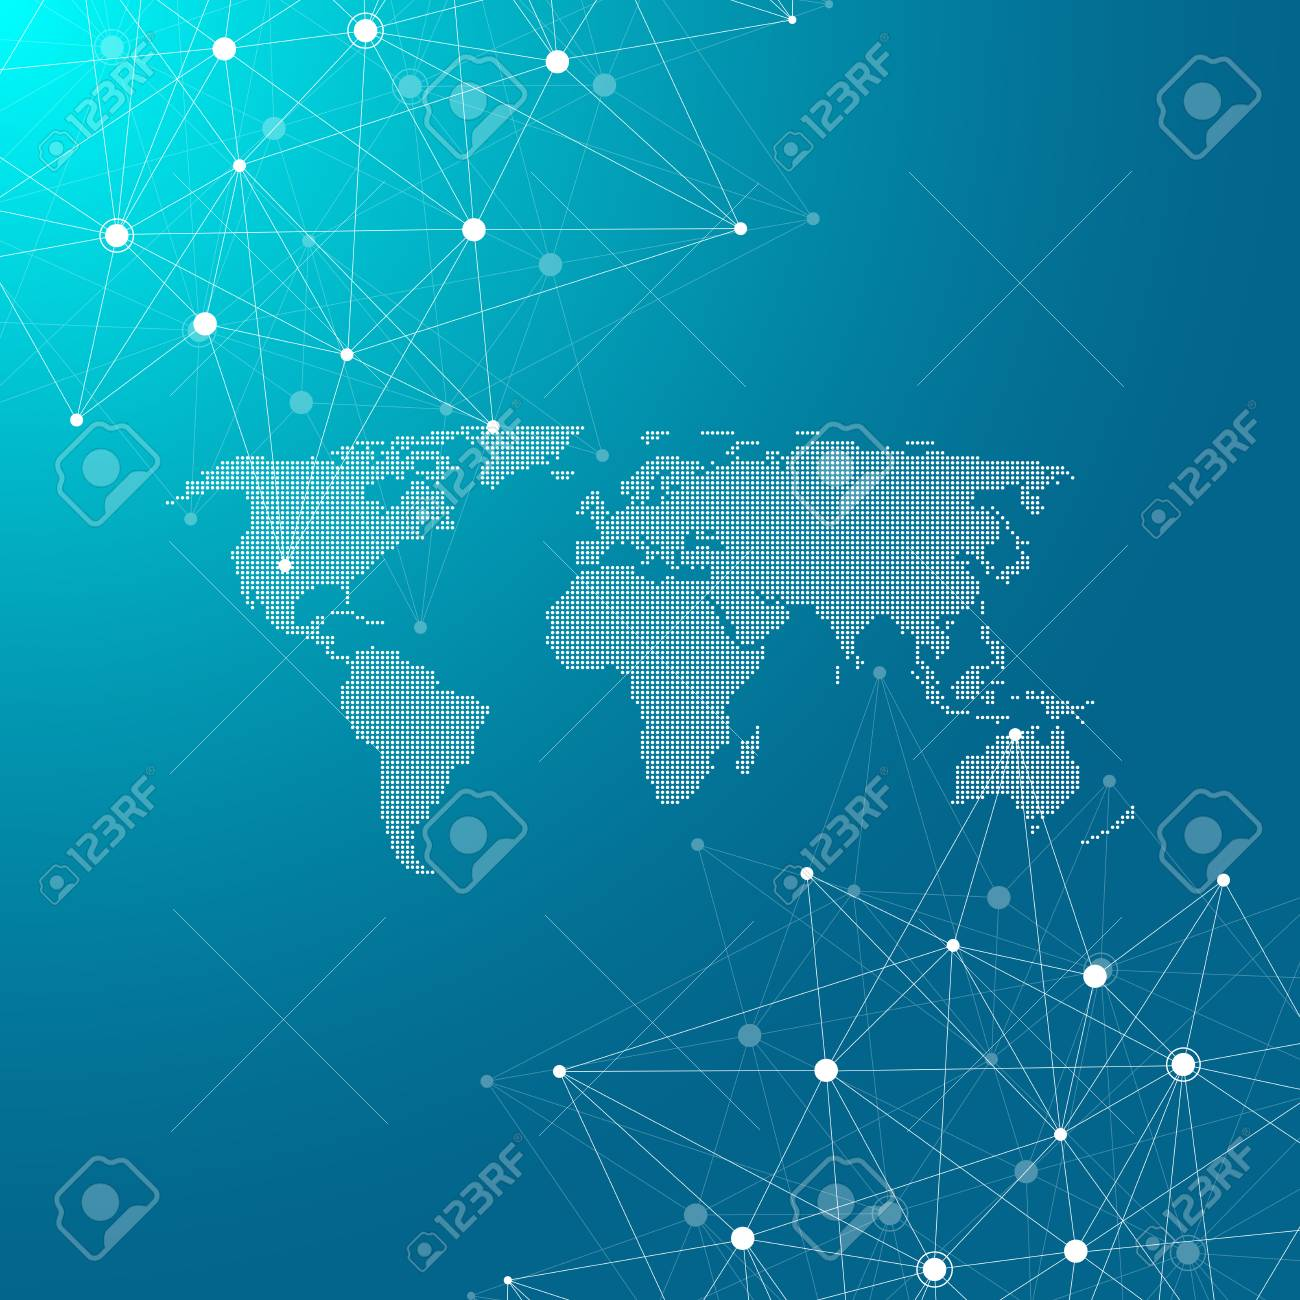 Global Network Connections With Dotted World Map Internet Connection Diagram Background Abstract Structure